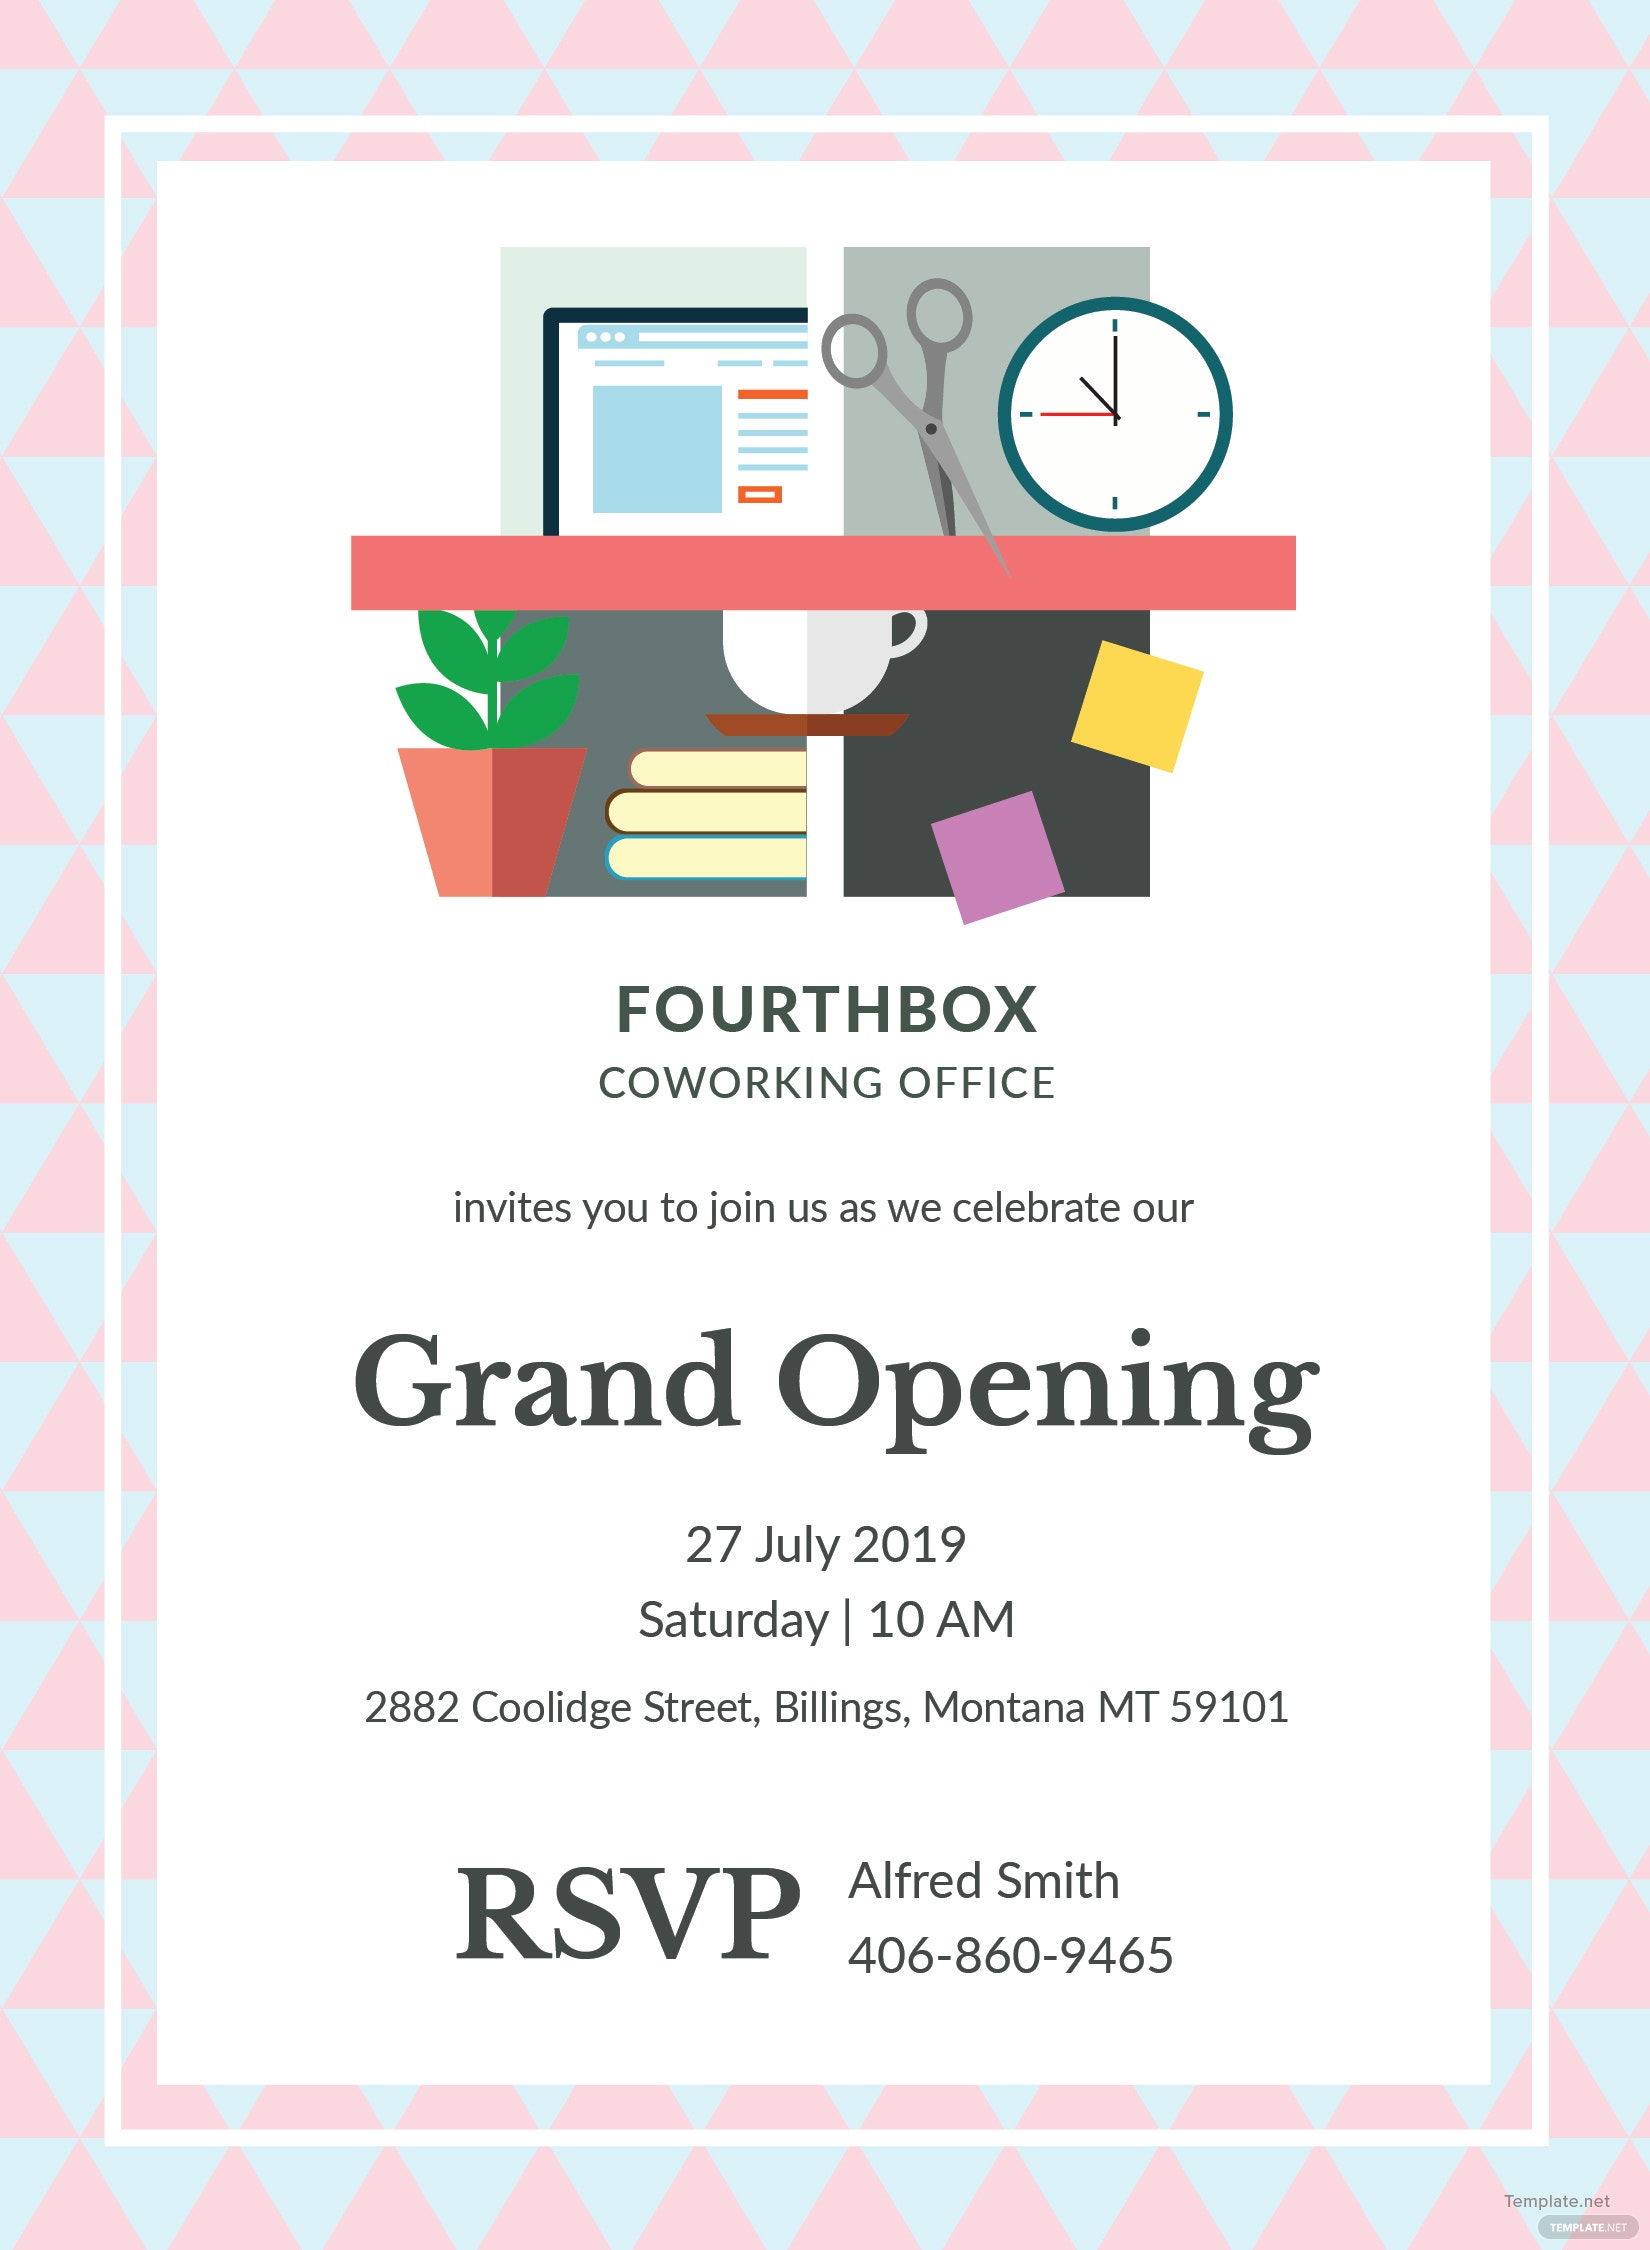 Office Opening Invitation Card Template in Adobe ...